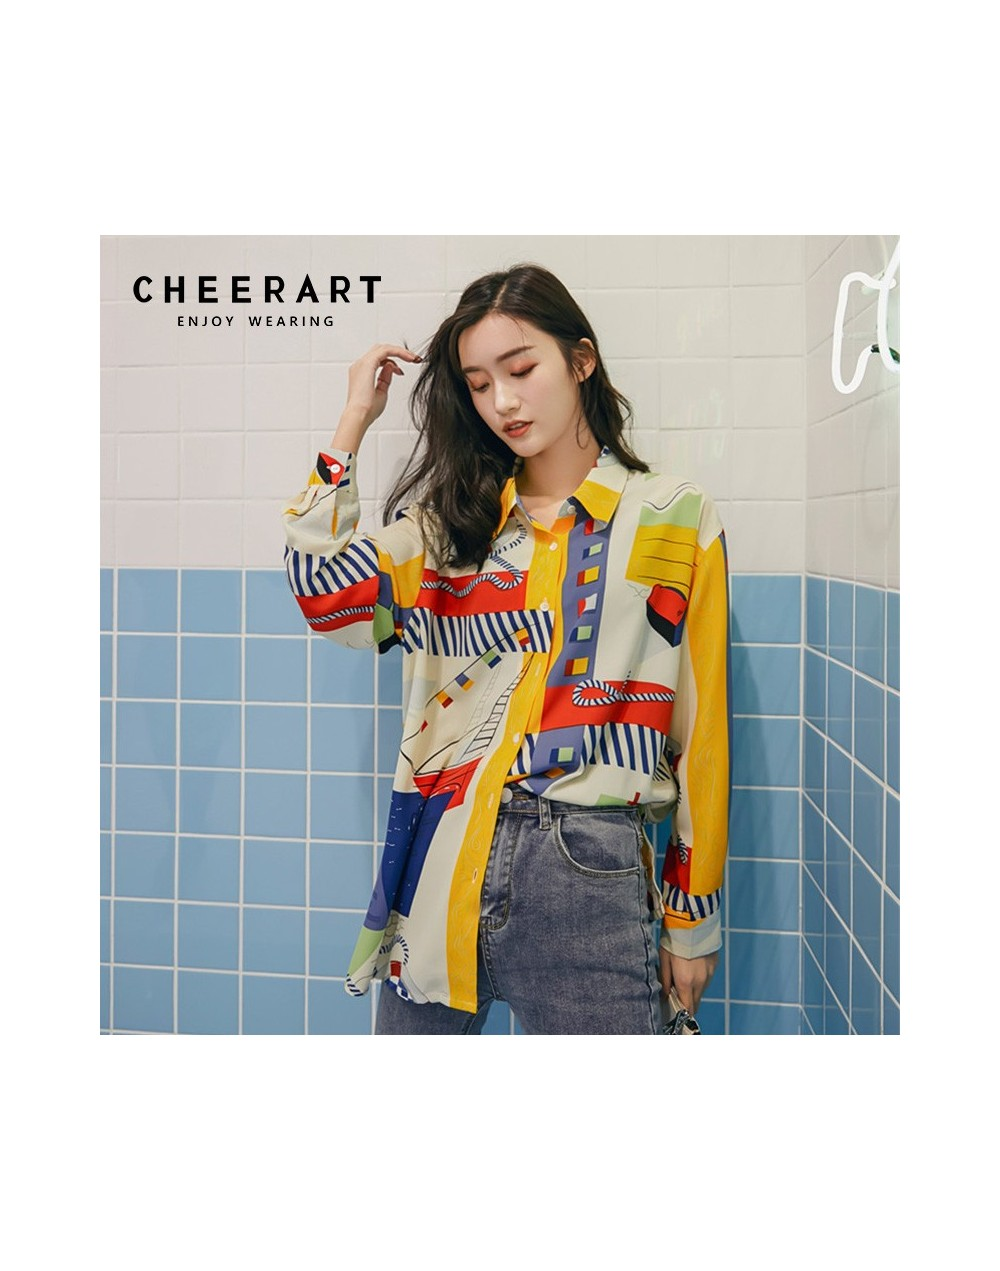 Abstraction Print Womens Tops And Blouses Color Block Long Sleeve Shirt Colorful Blouse Spring Fashion 2019 - 4C3087665745